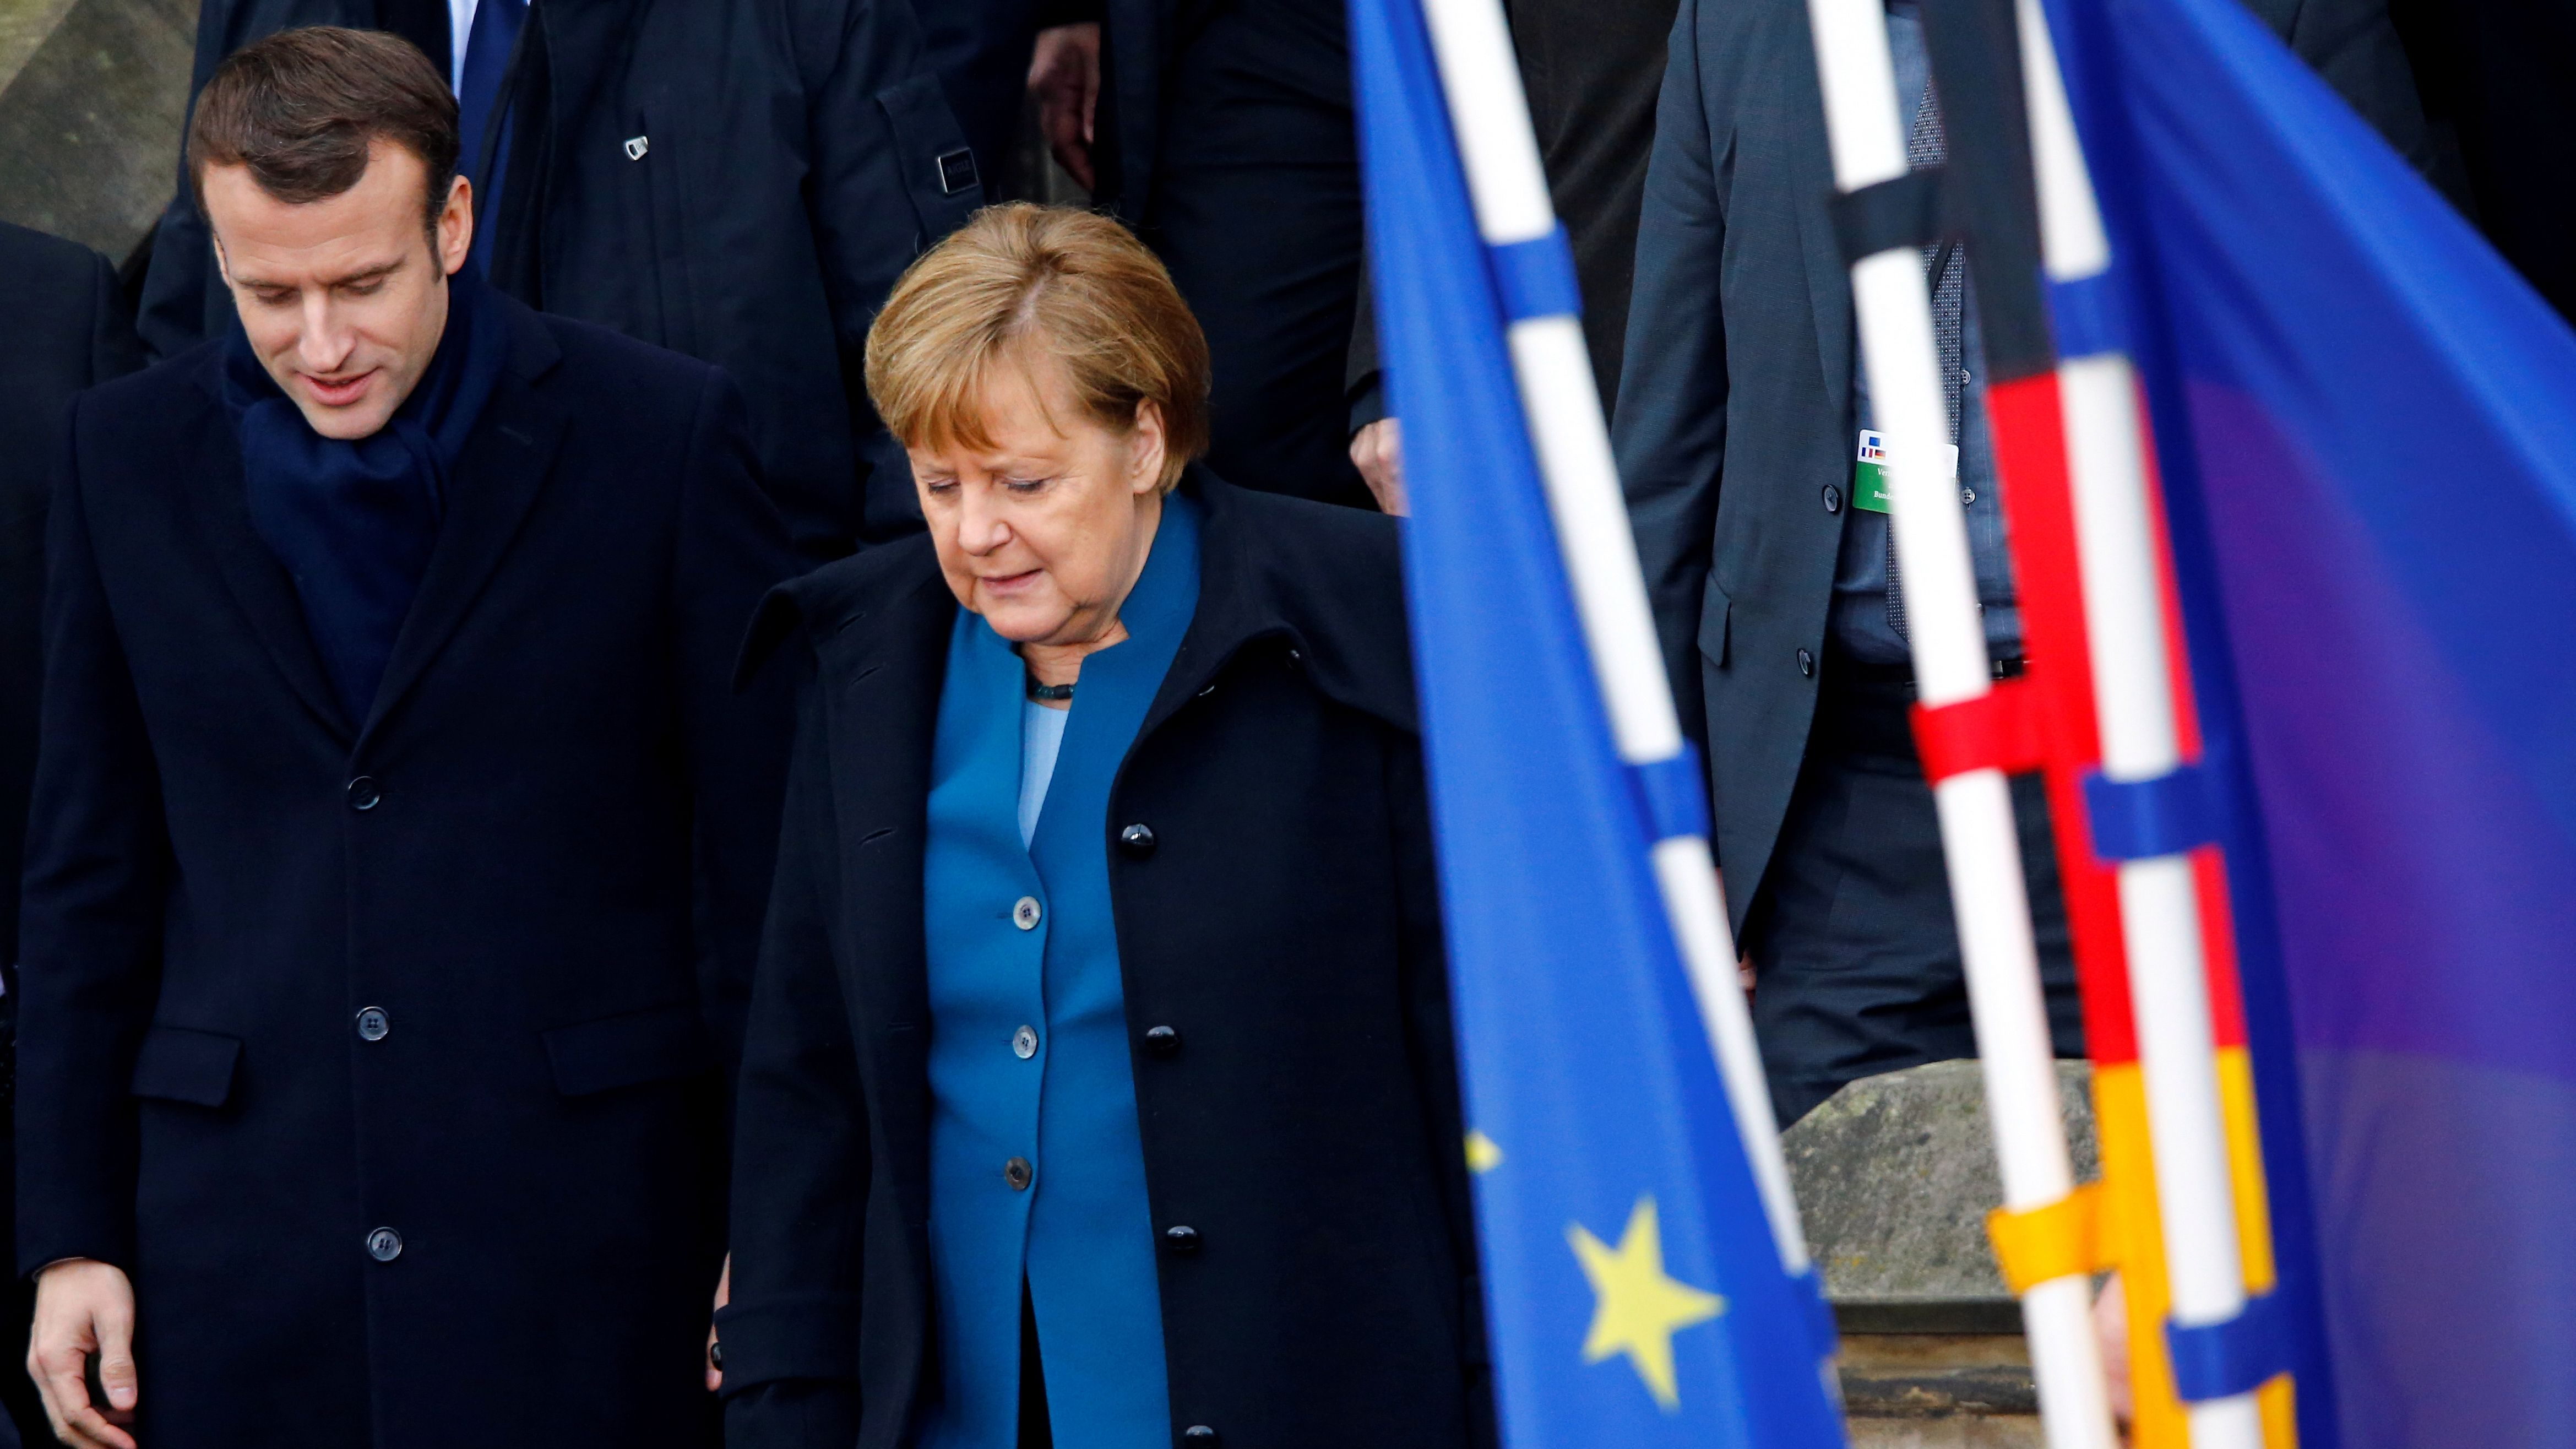 The weirdest fake news controversies surrounding the new France-Germany treaty